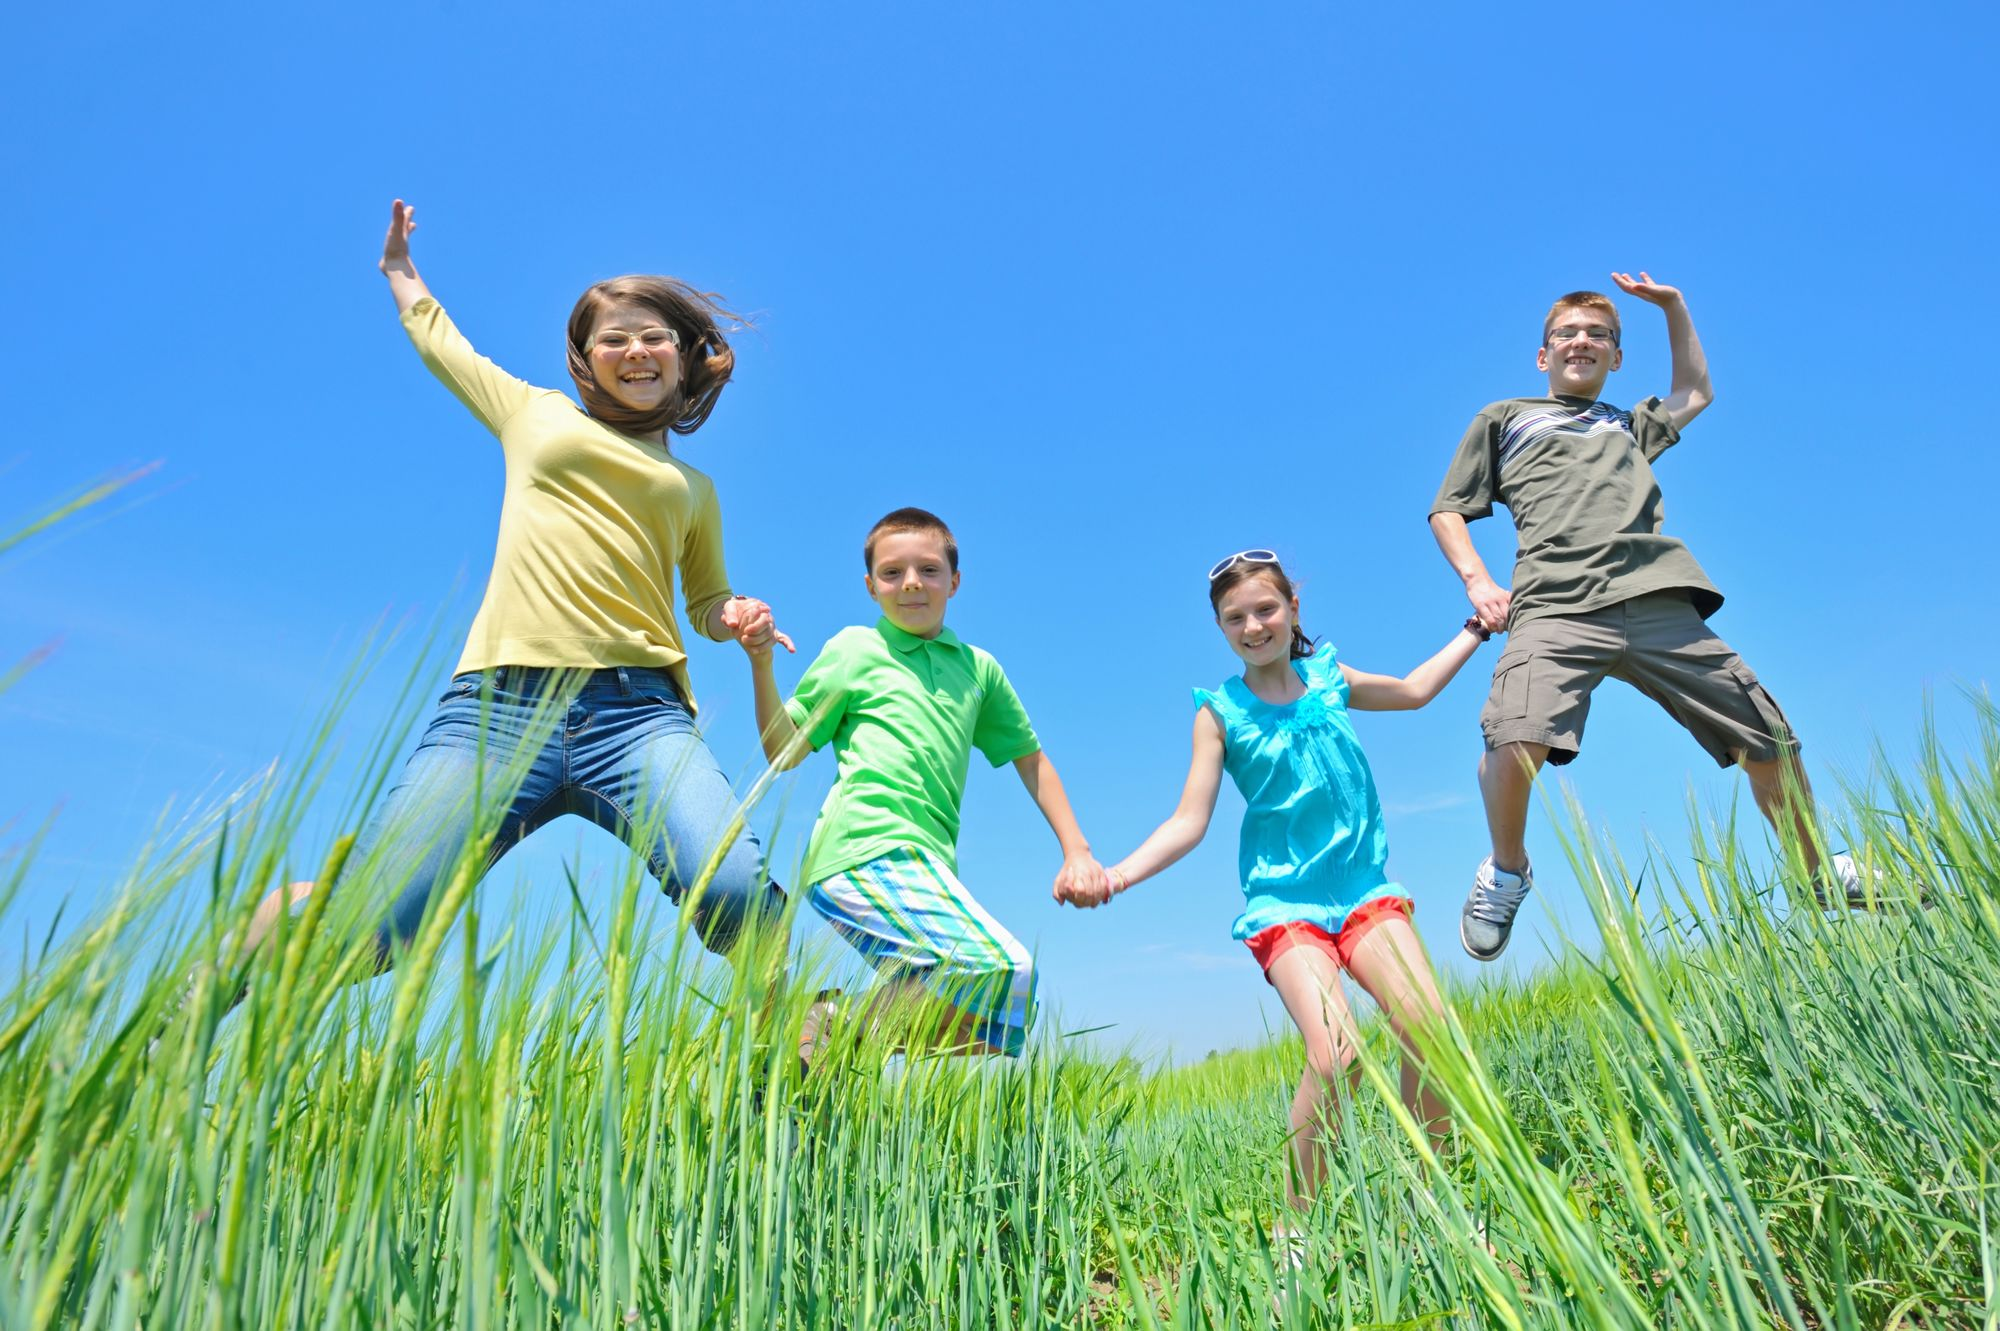 How to Help Your Kids Burn Off Energy